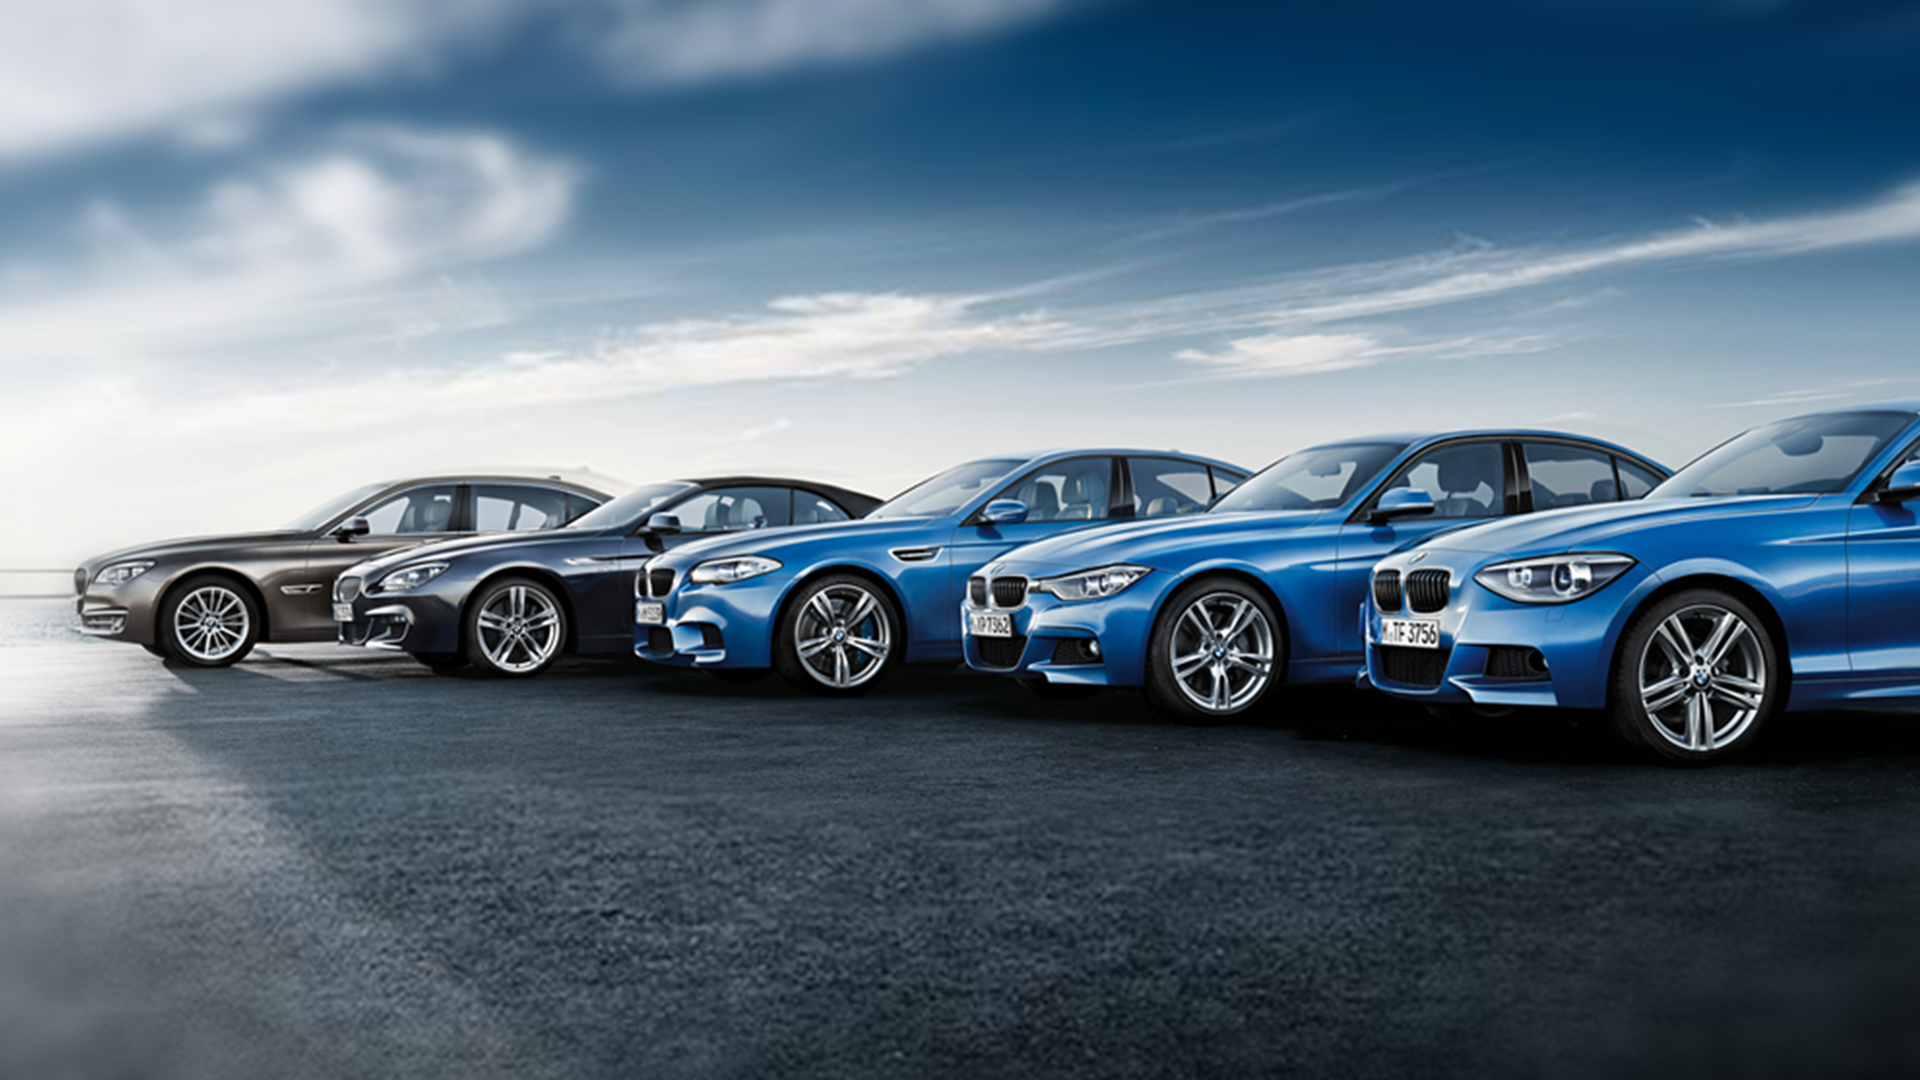 a business fleet of BMW lease cars